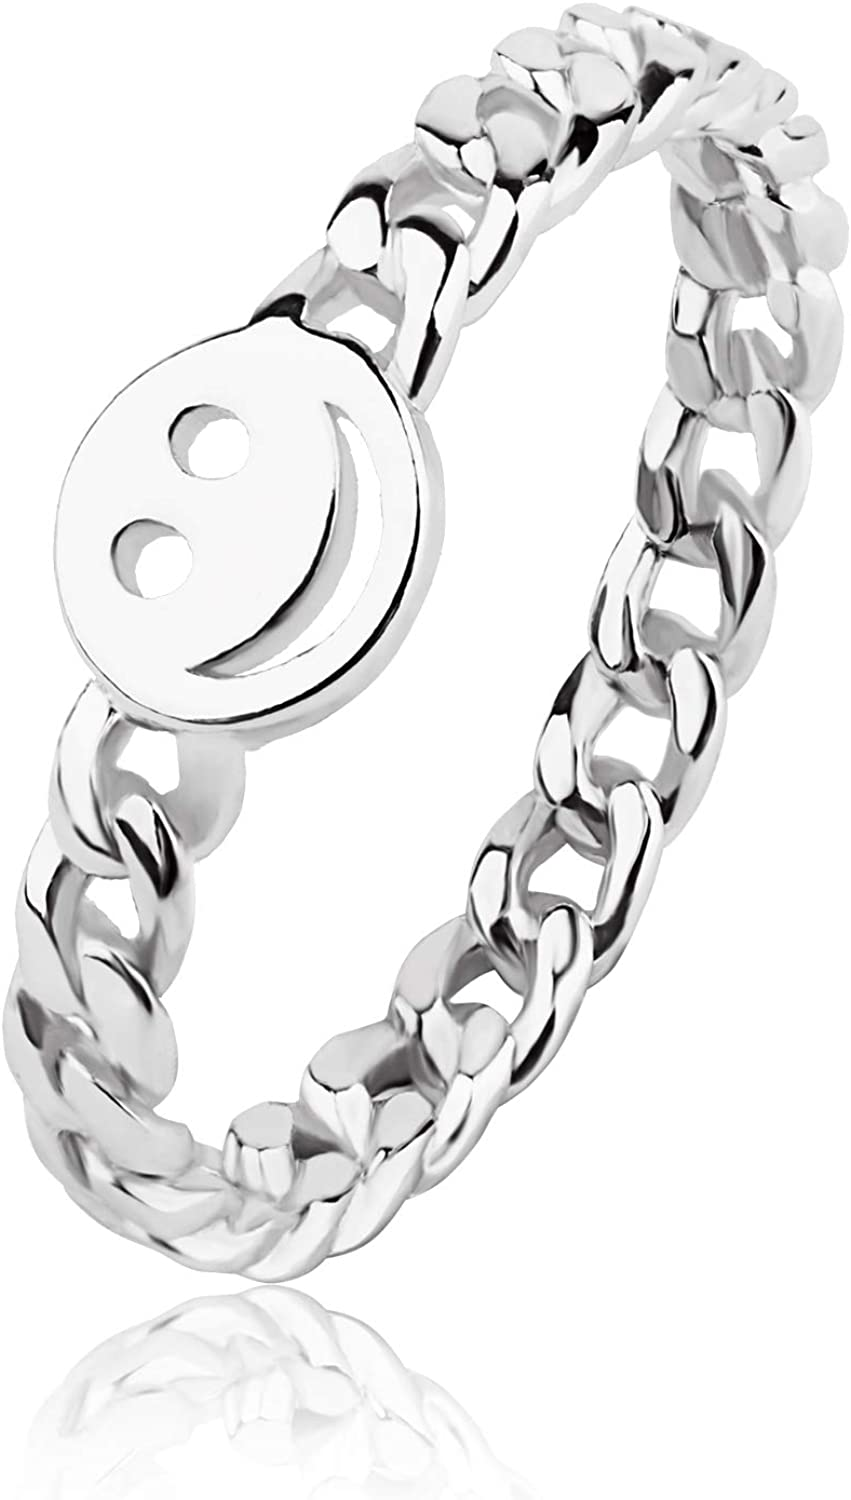 Smile Happy Face Rings Smiley Stainless Steel Adjustable